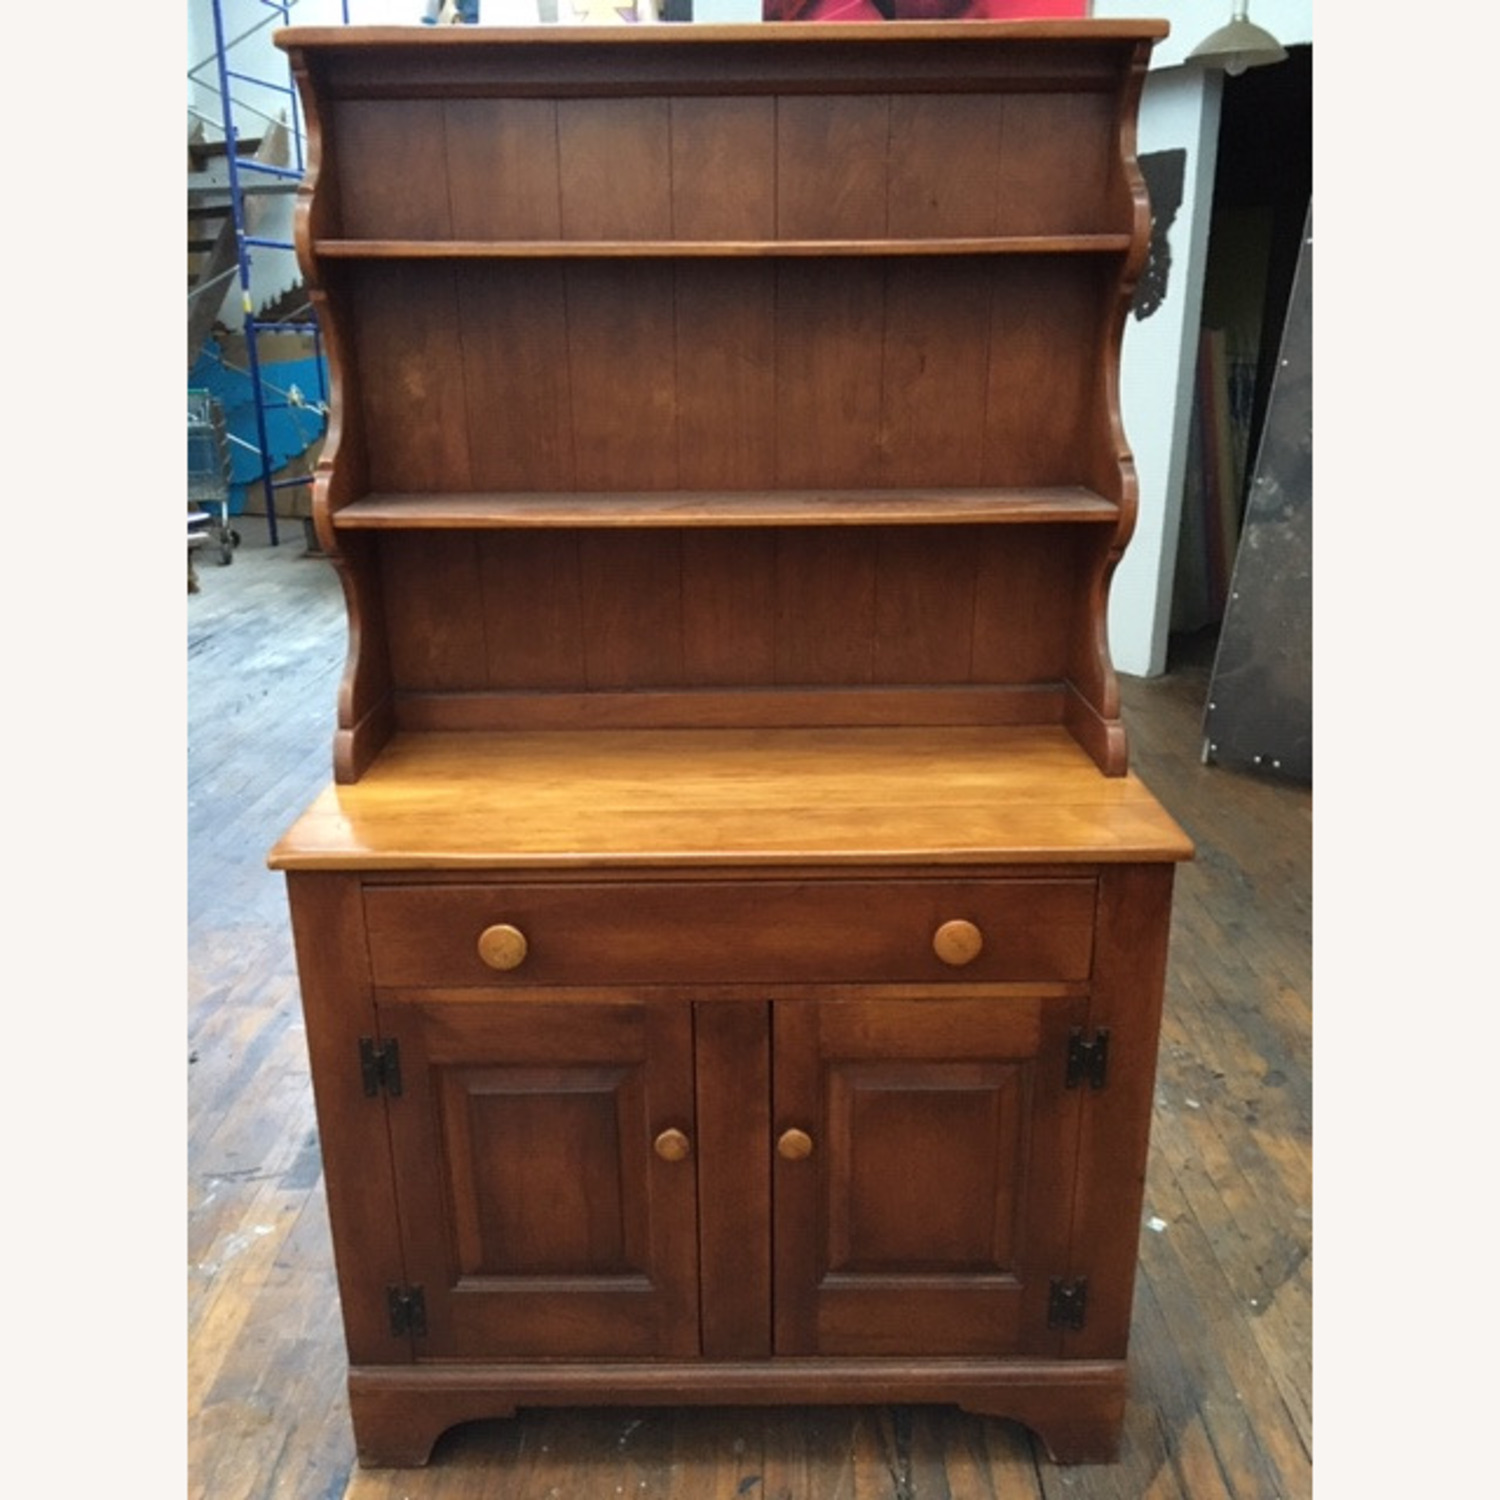 Cushman Colonial Sideboard 1950s Solid Maple - image-3